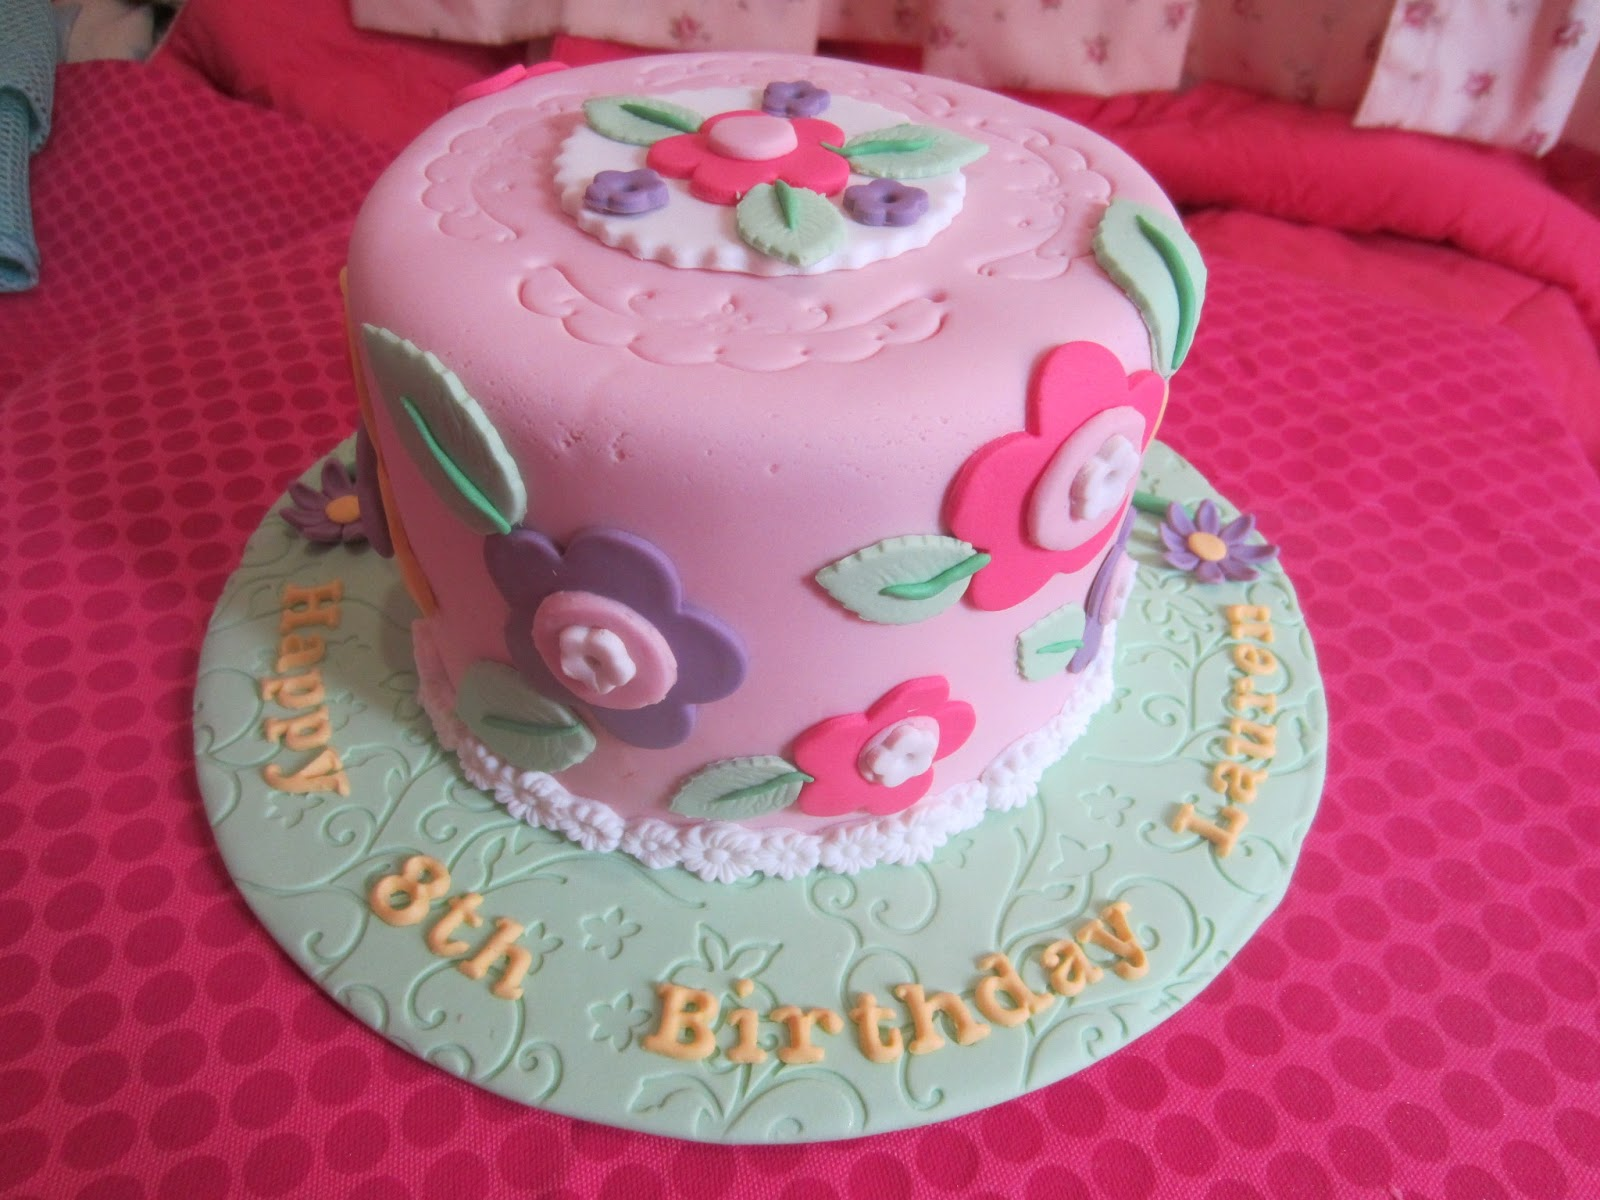 8 Flowers And Butterfly Design On Cakes Photo